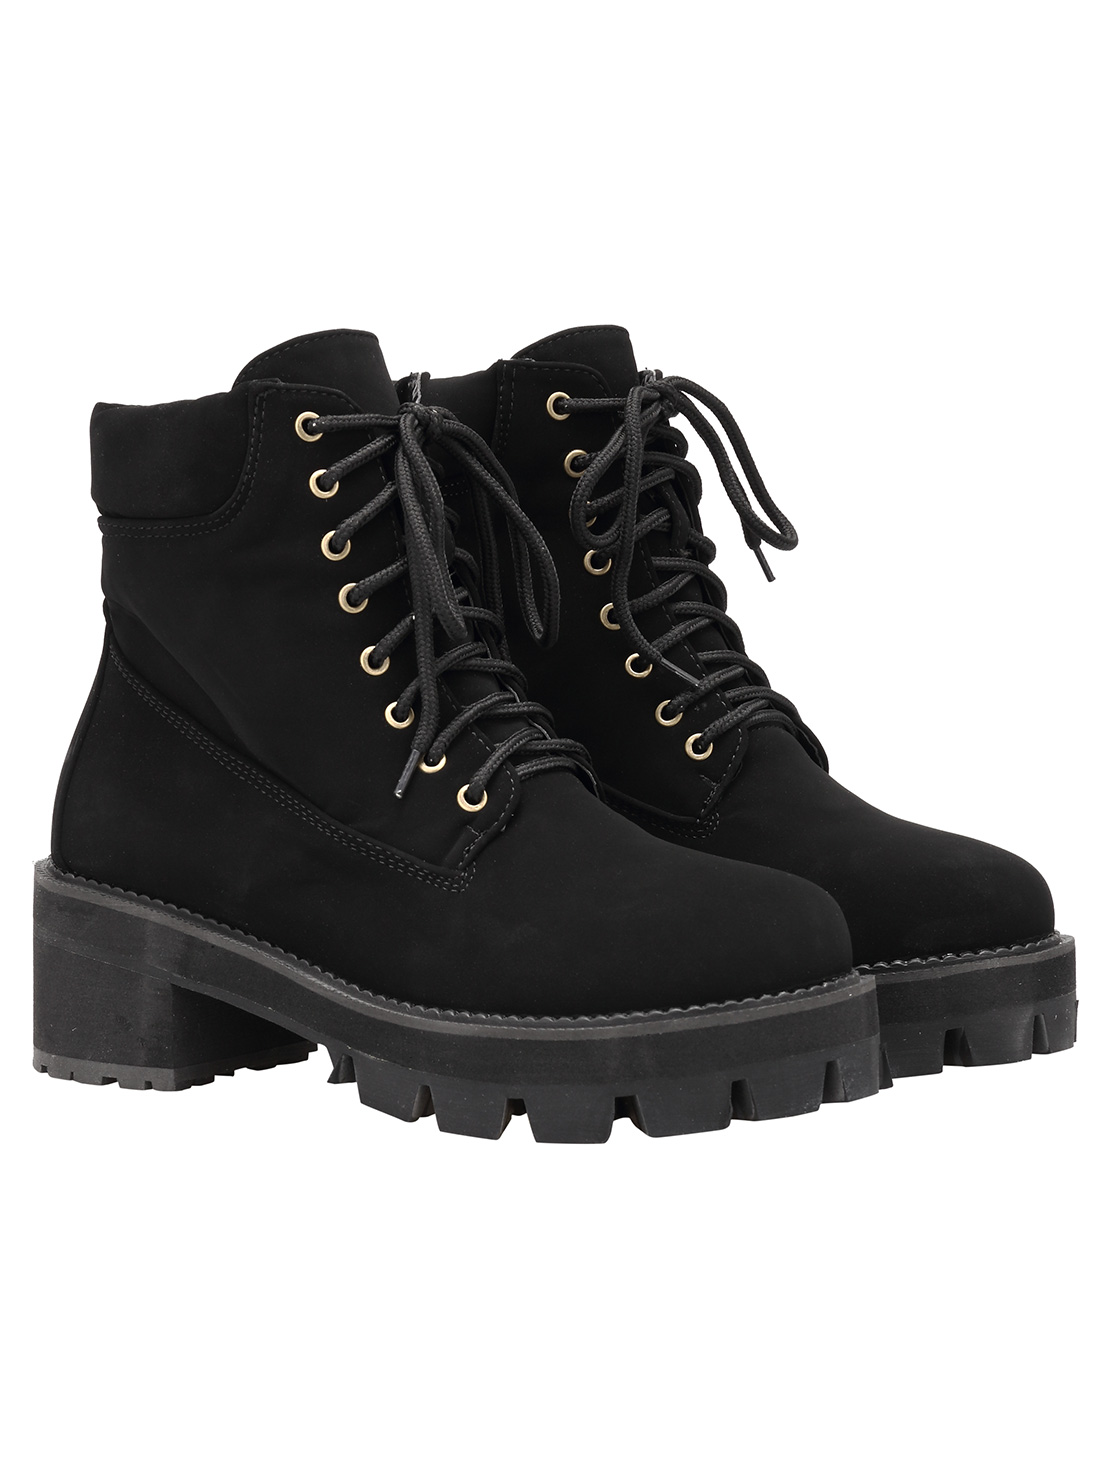 598bd9d0701b0 Black Round Toe Lace Up Boots -SheIn(Sheinside)